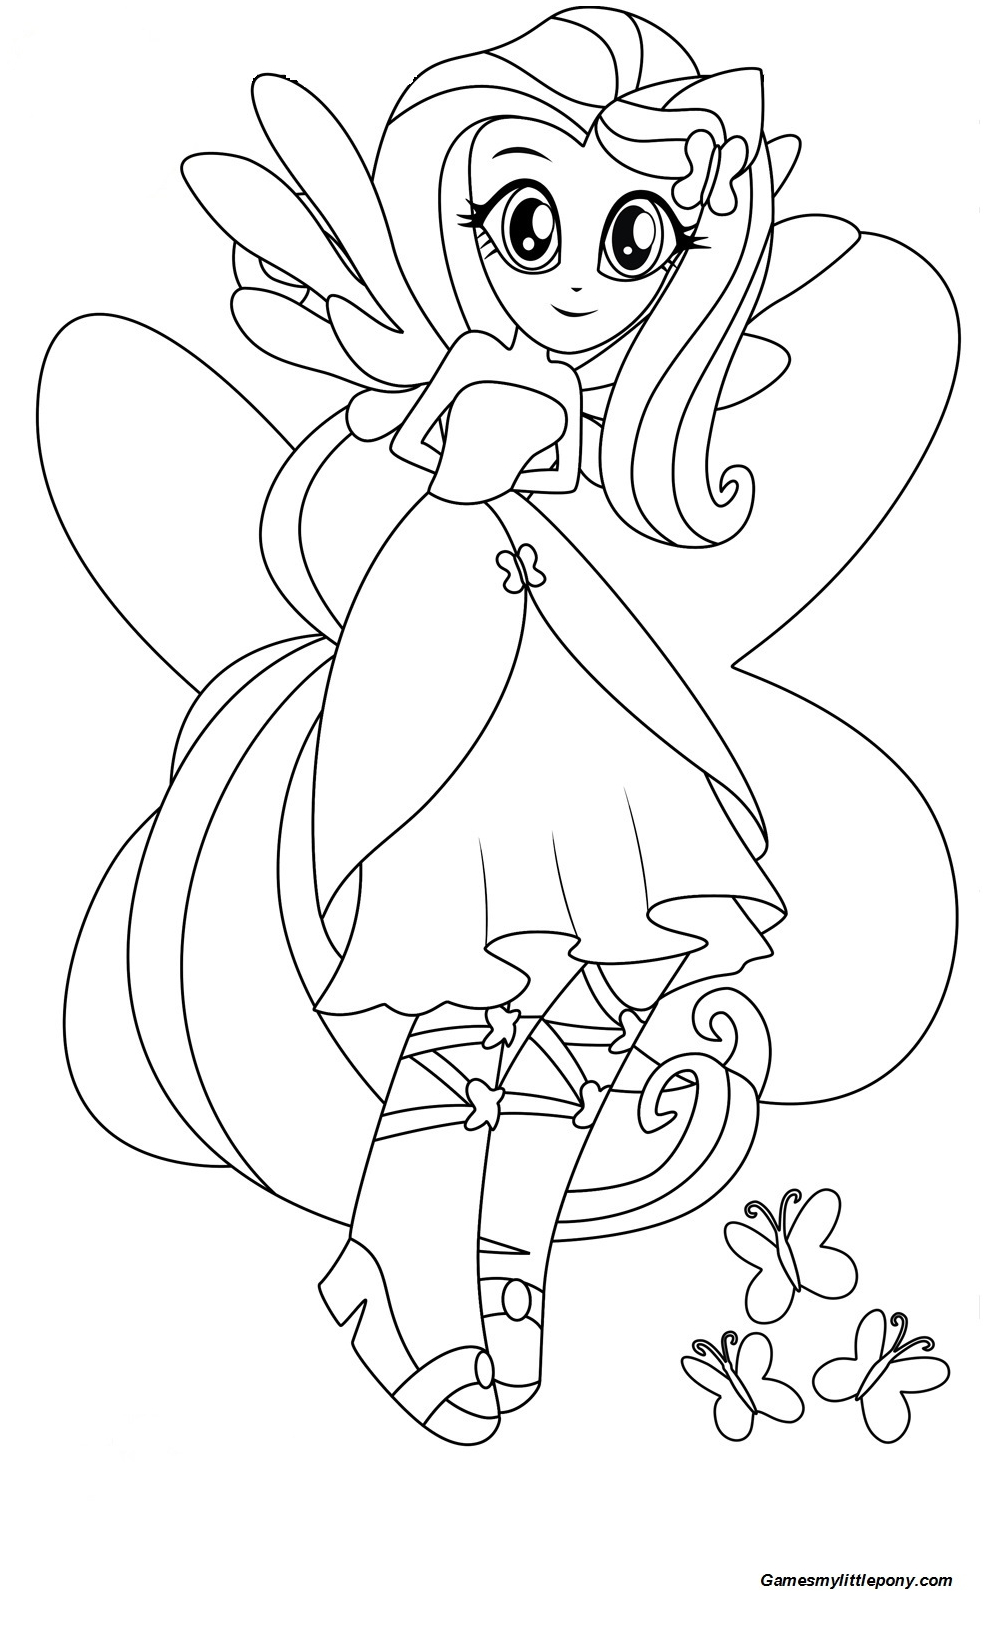 Equestria Girls Fluttershy Coloring Page